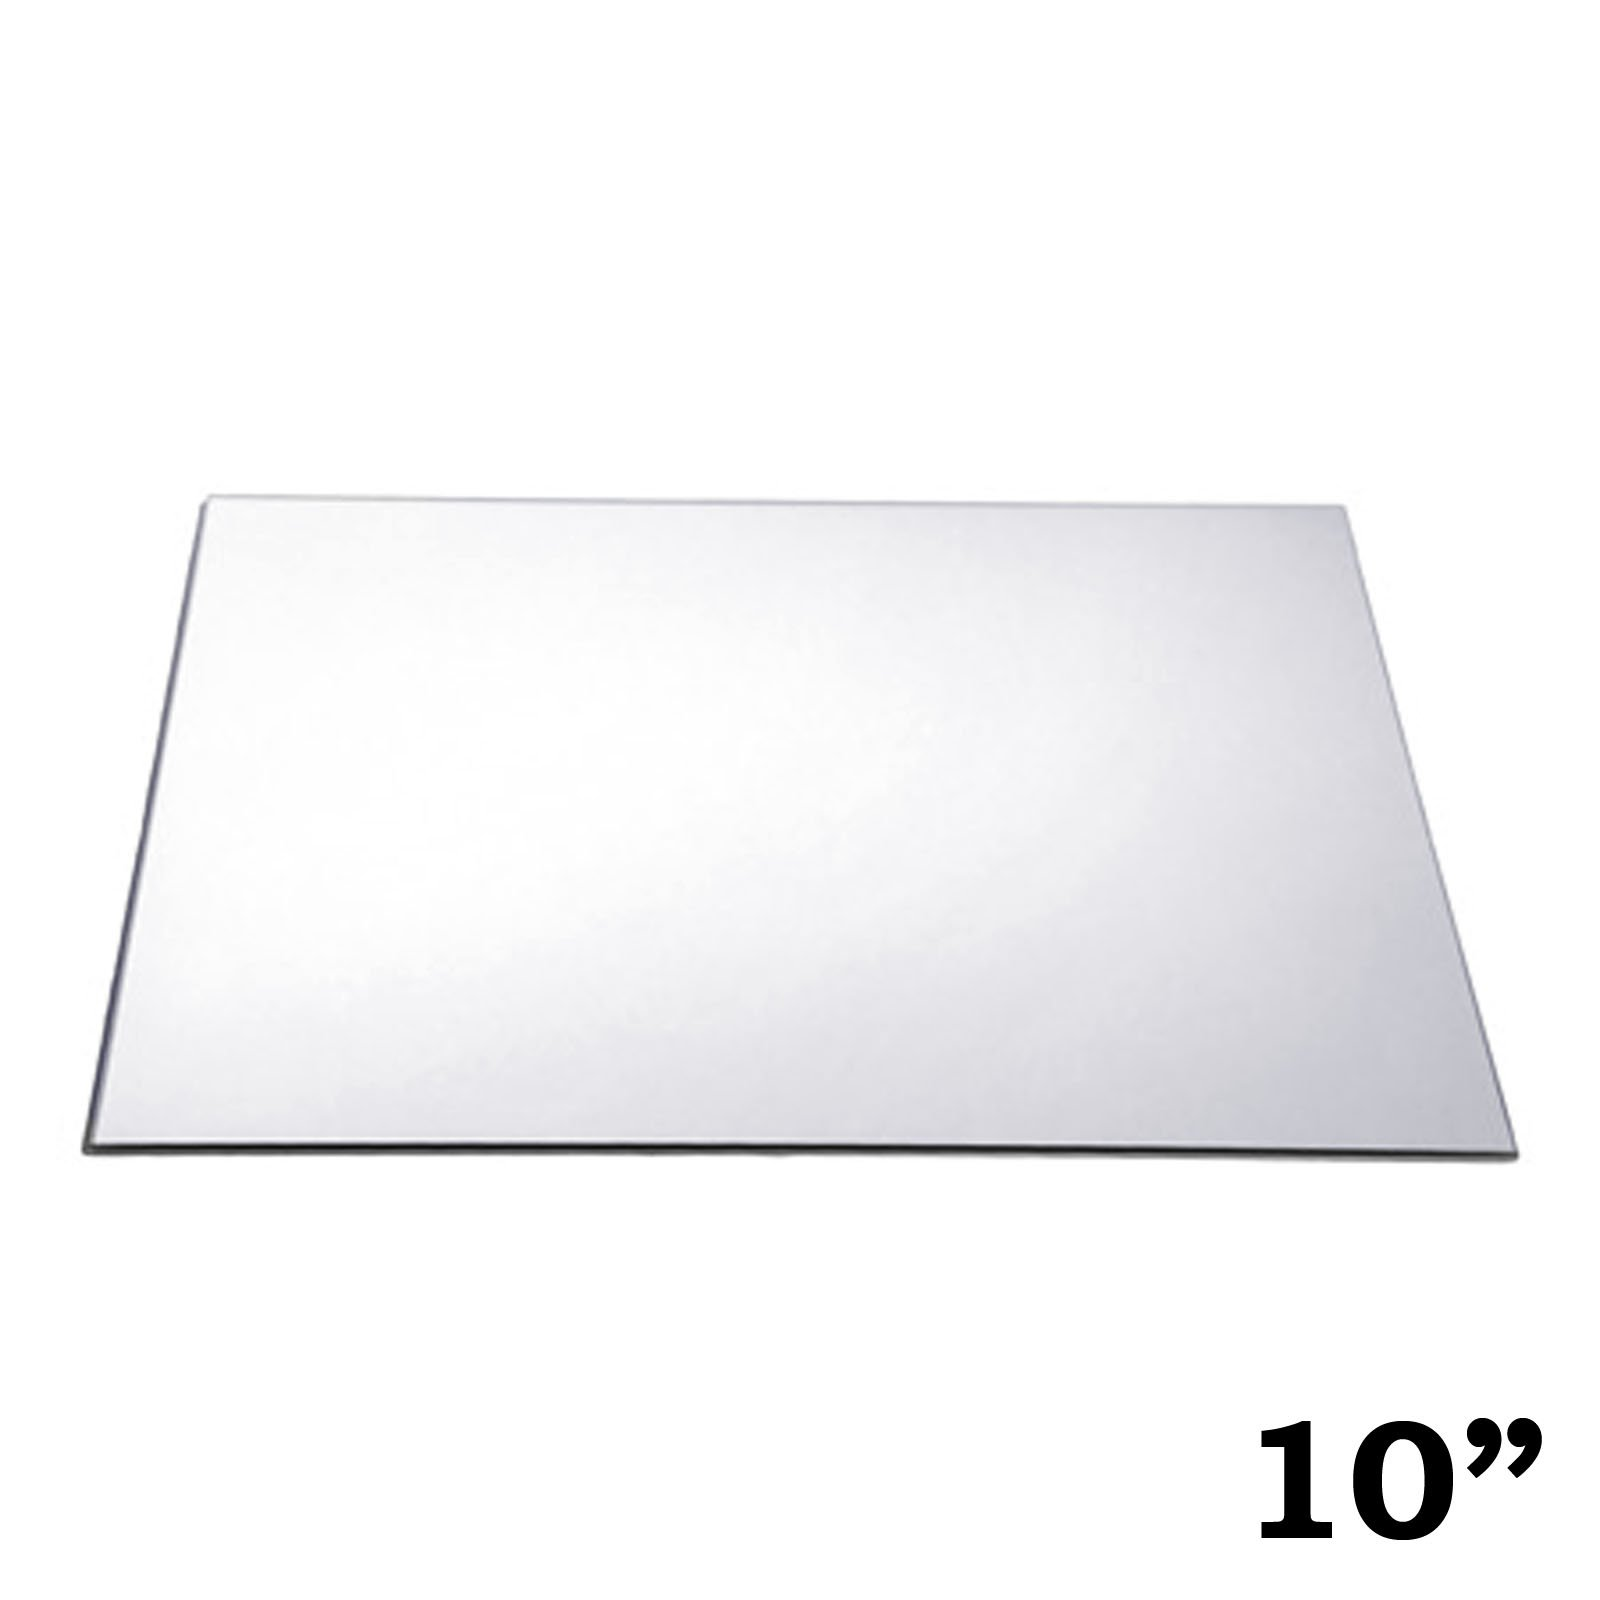 BalsaCircle 36 pcs 10-Inch Square Glass Mirrors for Wedding Party Favors Centerpieces Table Decorations Wholesale Supplies